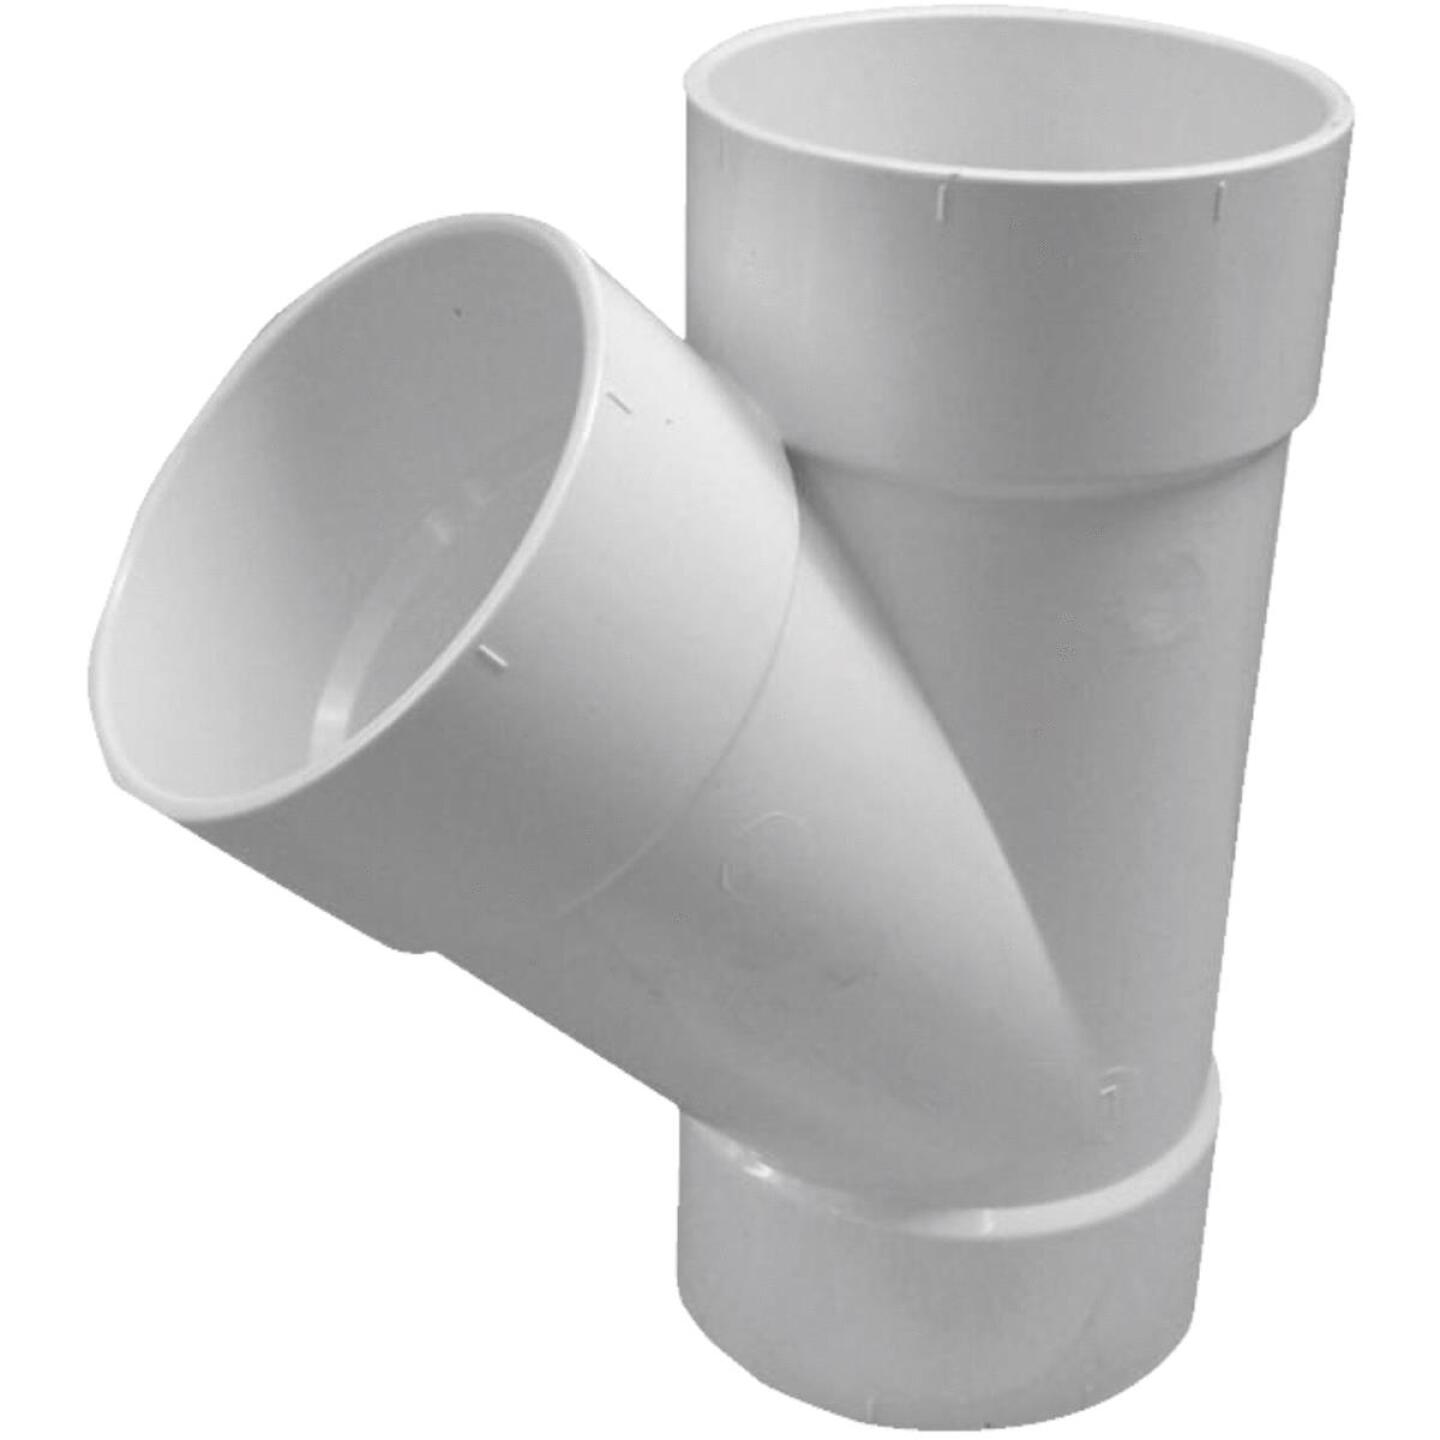 IPEX Canplas SDR 35 Hub 3 In. PVC Sewer and Drain Wye Image 1